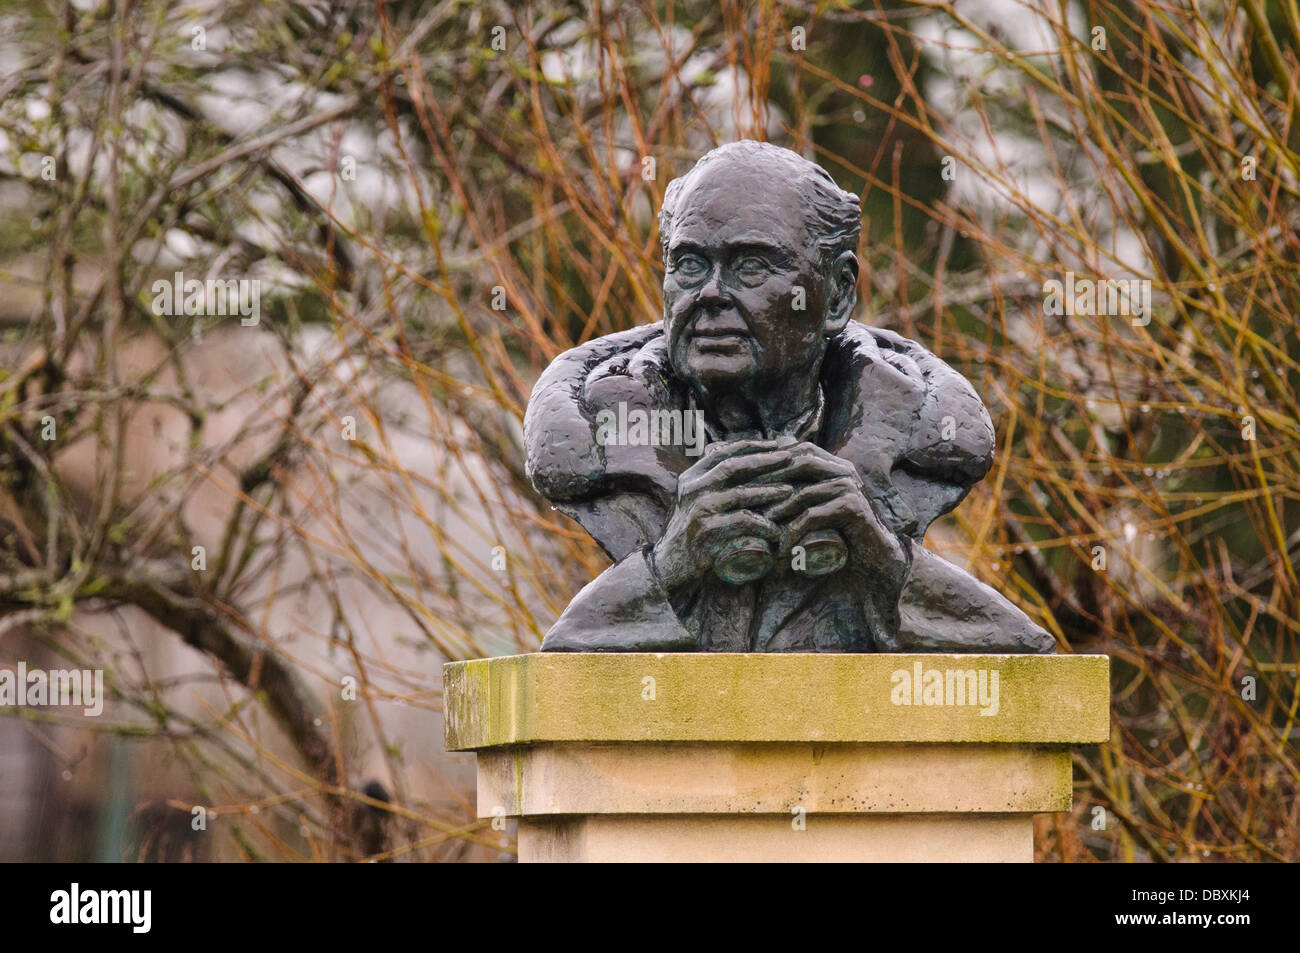 A bust of Sir Peter Scott, naturalist and founder of the wildfowl and wetland trust, wet from rain, at Slimbridge Stock Photo